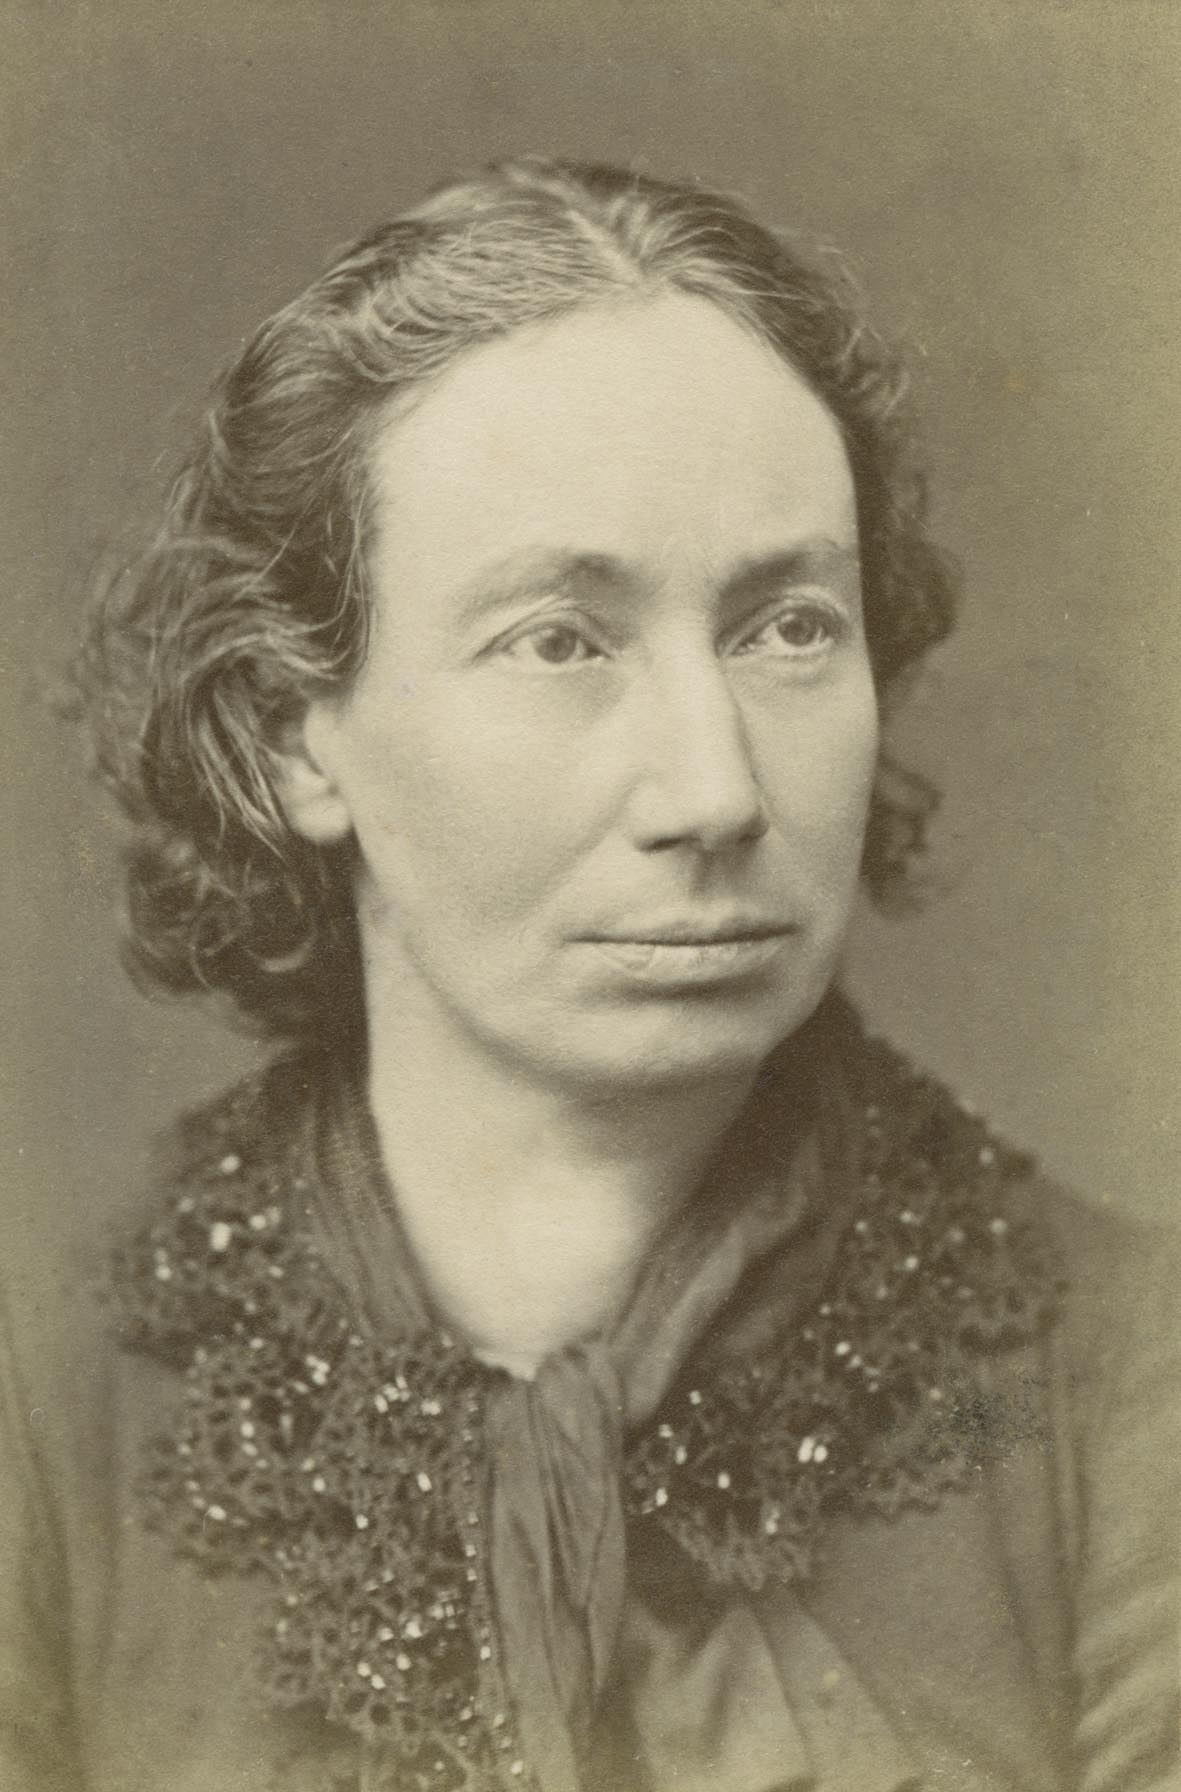 Louise michel wikipedia for Salon john porte de namur